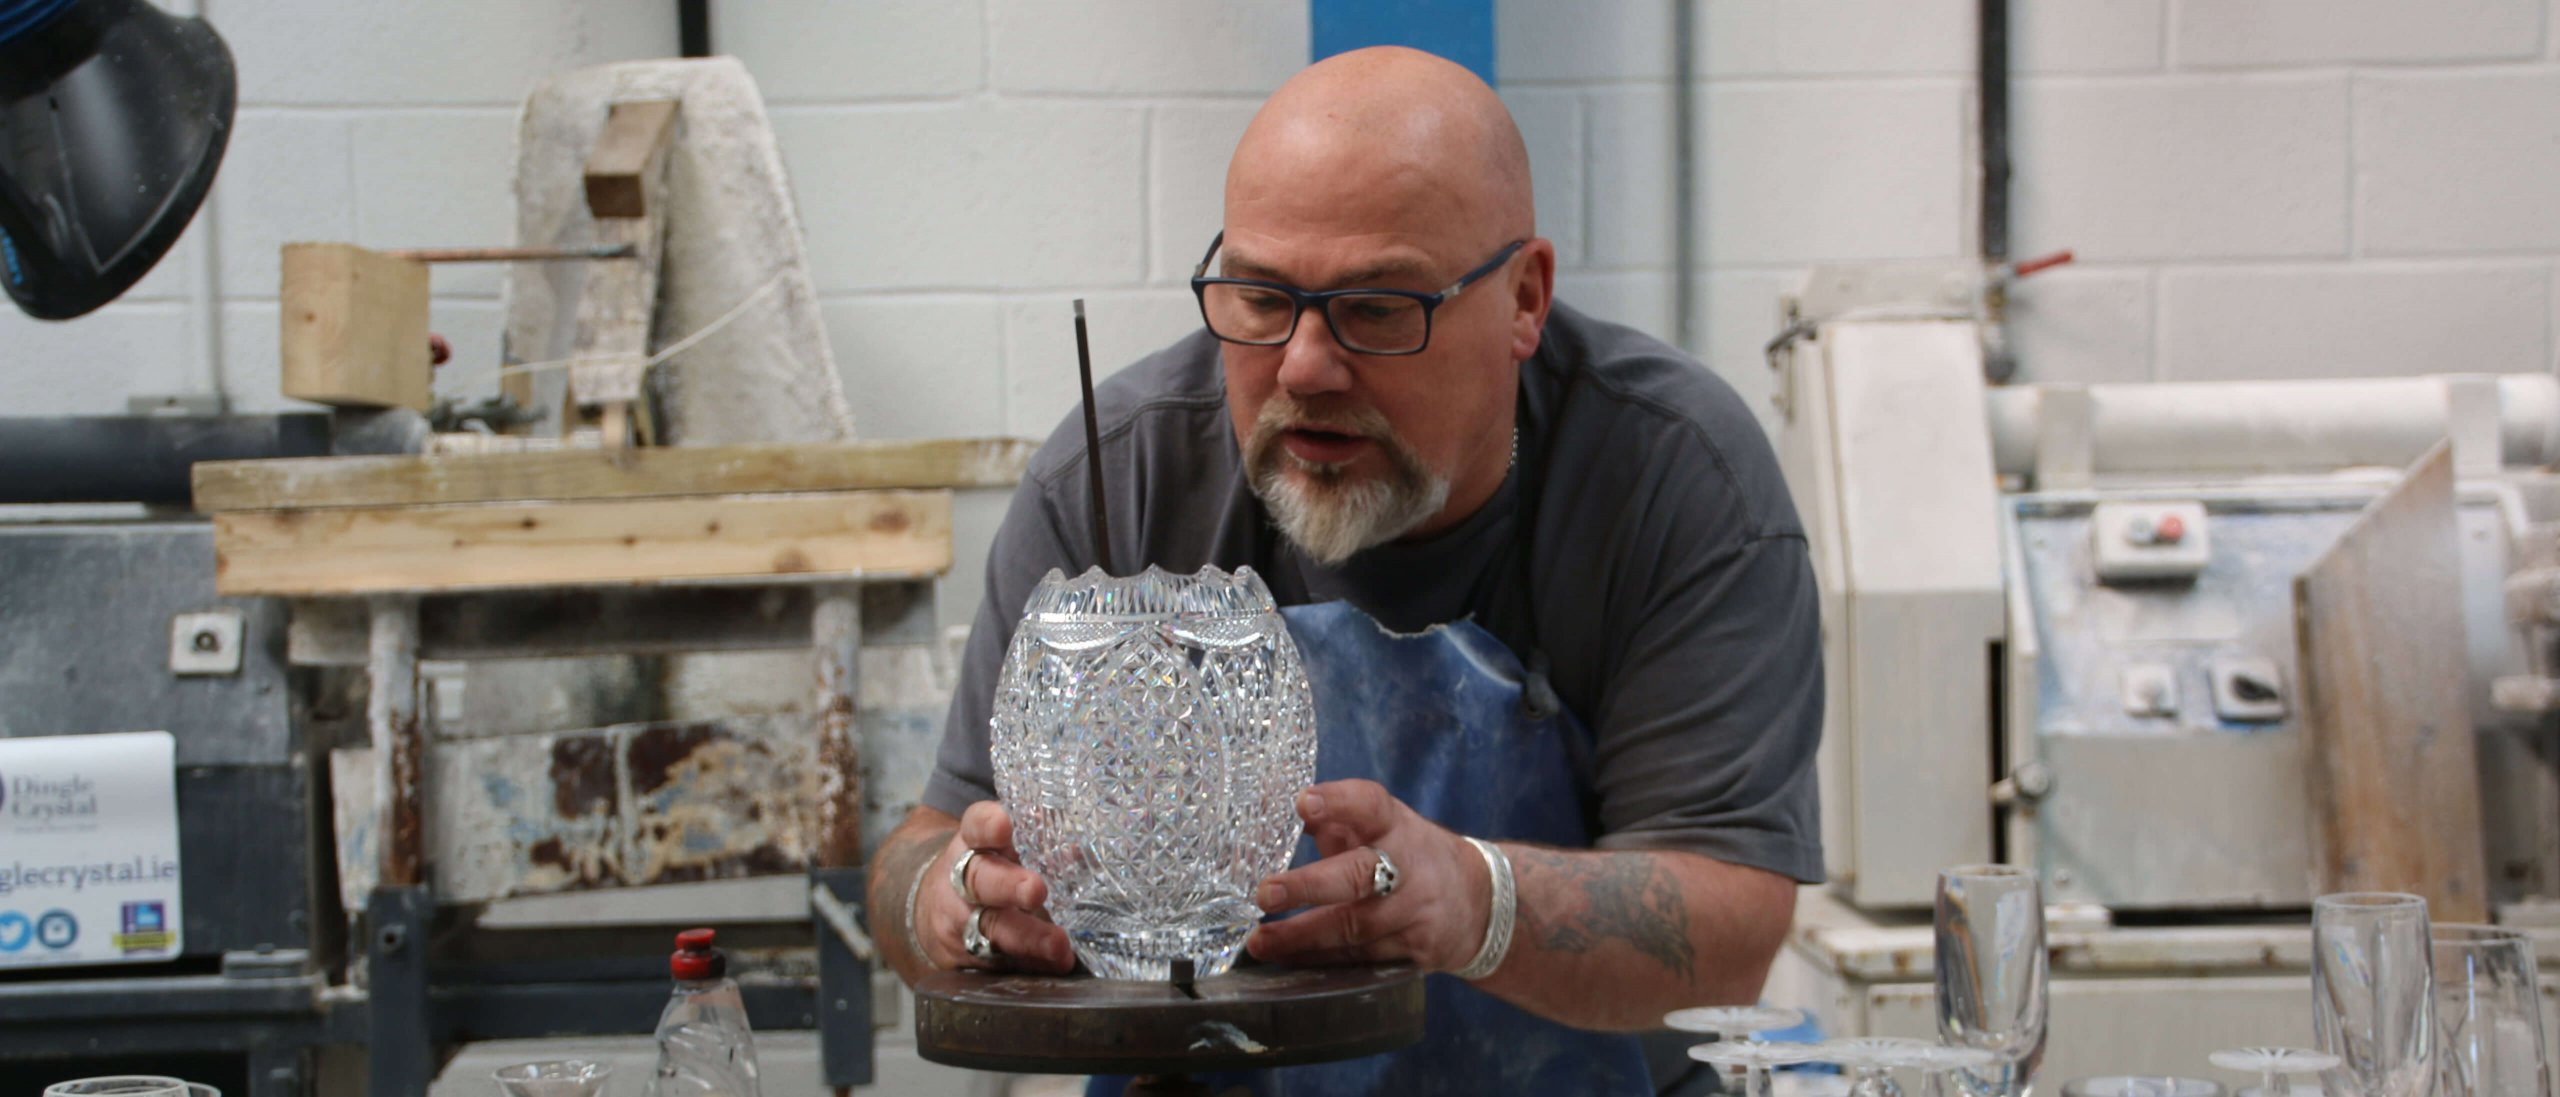 Master crystal craftsman Sean Daly in his studio in Dingle, Ireland